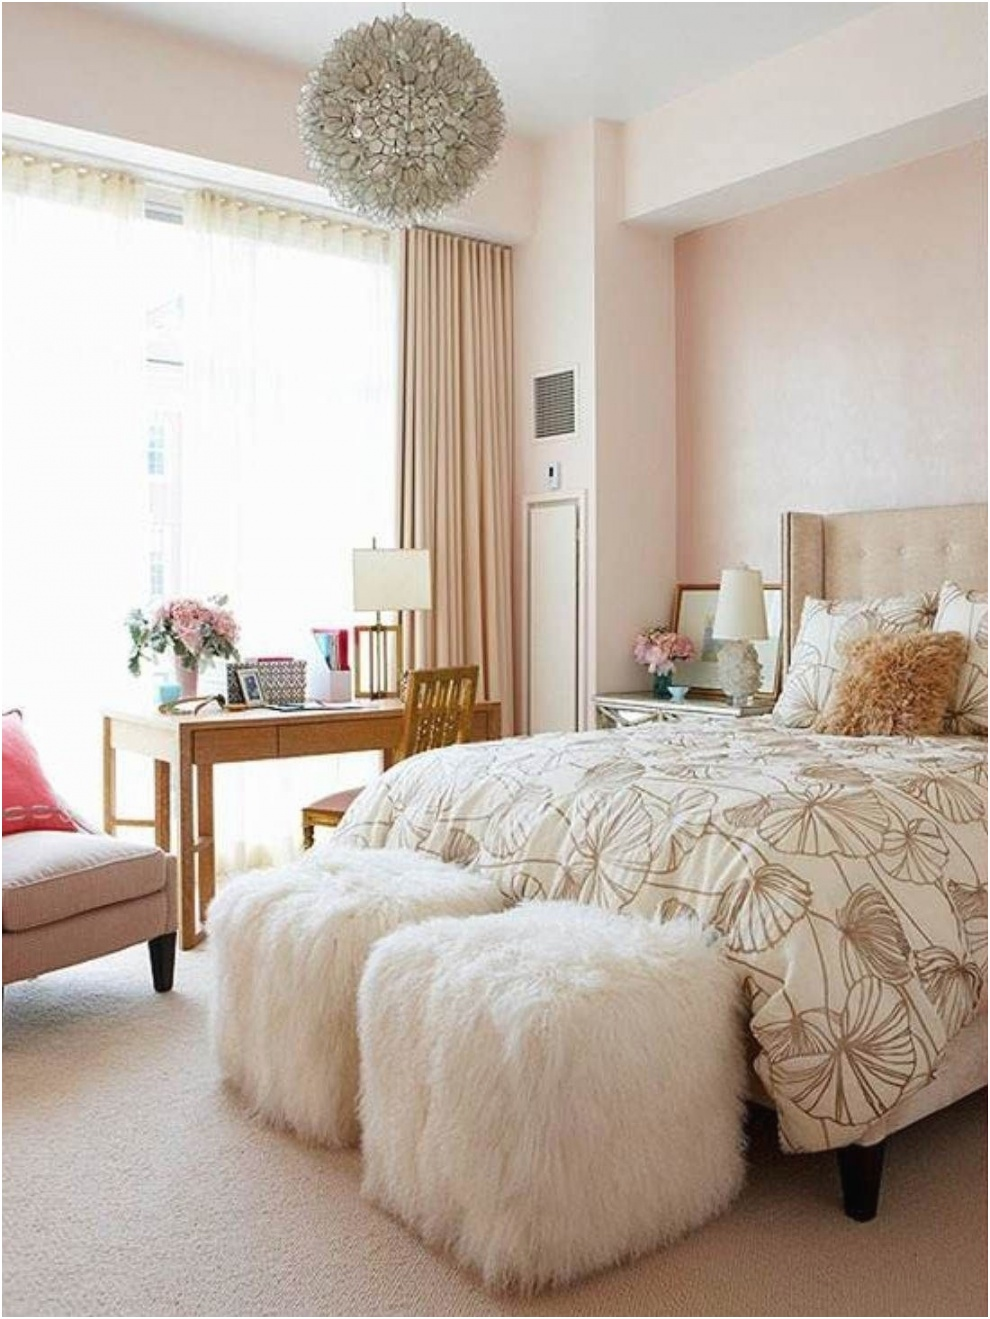 cool bedroom ideas for adults adult themes couple small bedroom designs for adults pink elegant chic designs women home